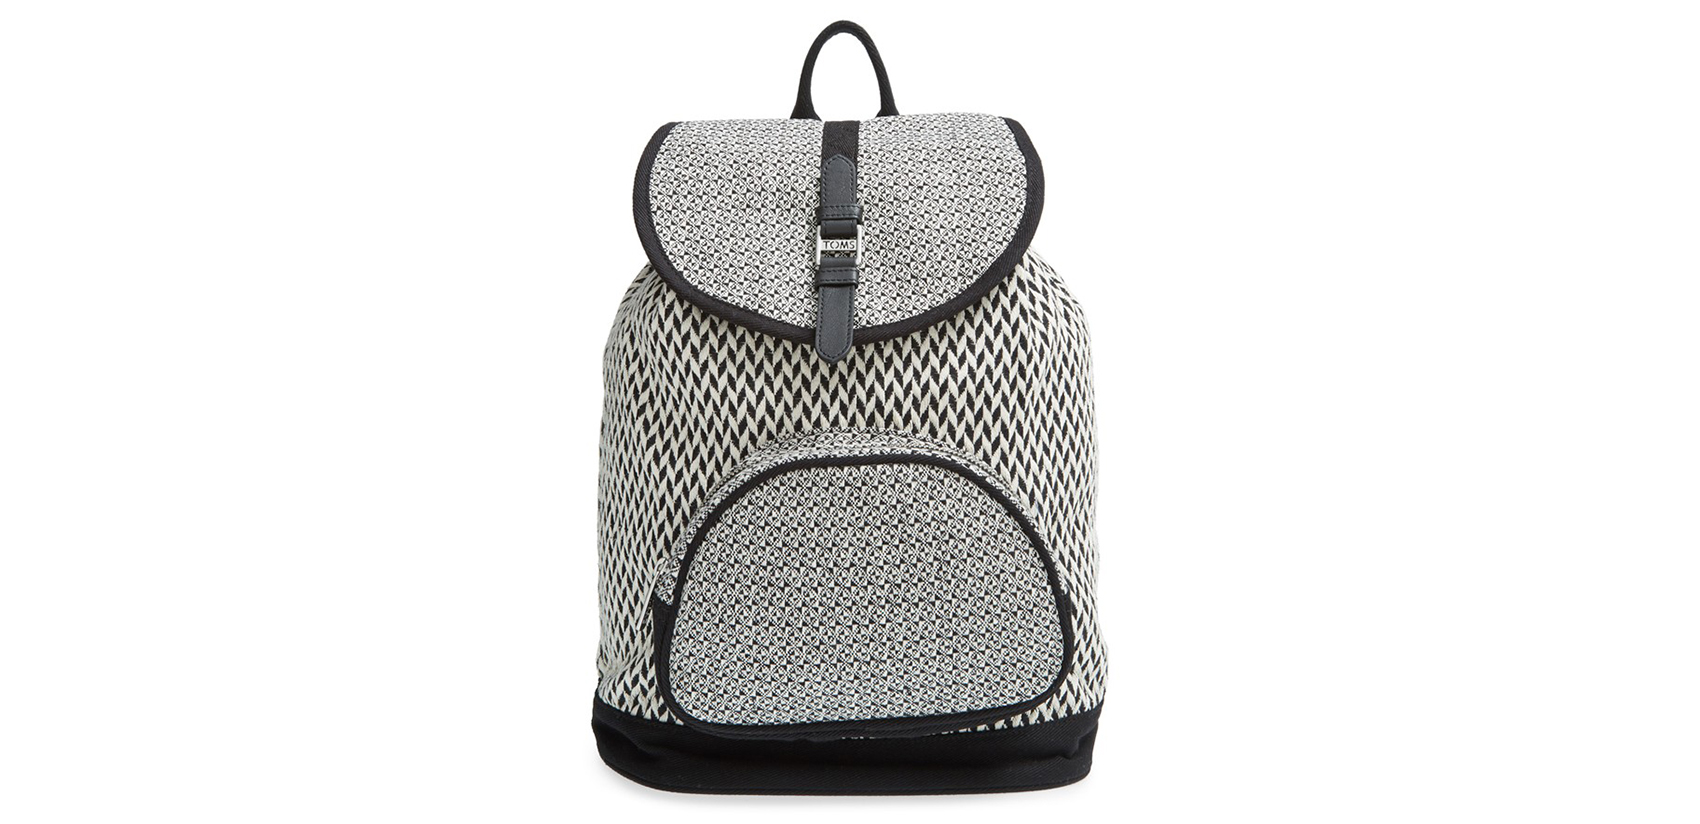 10 Stylish School Bags for College Students  6b6e7f8afdd79